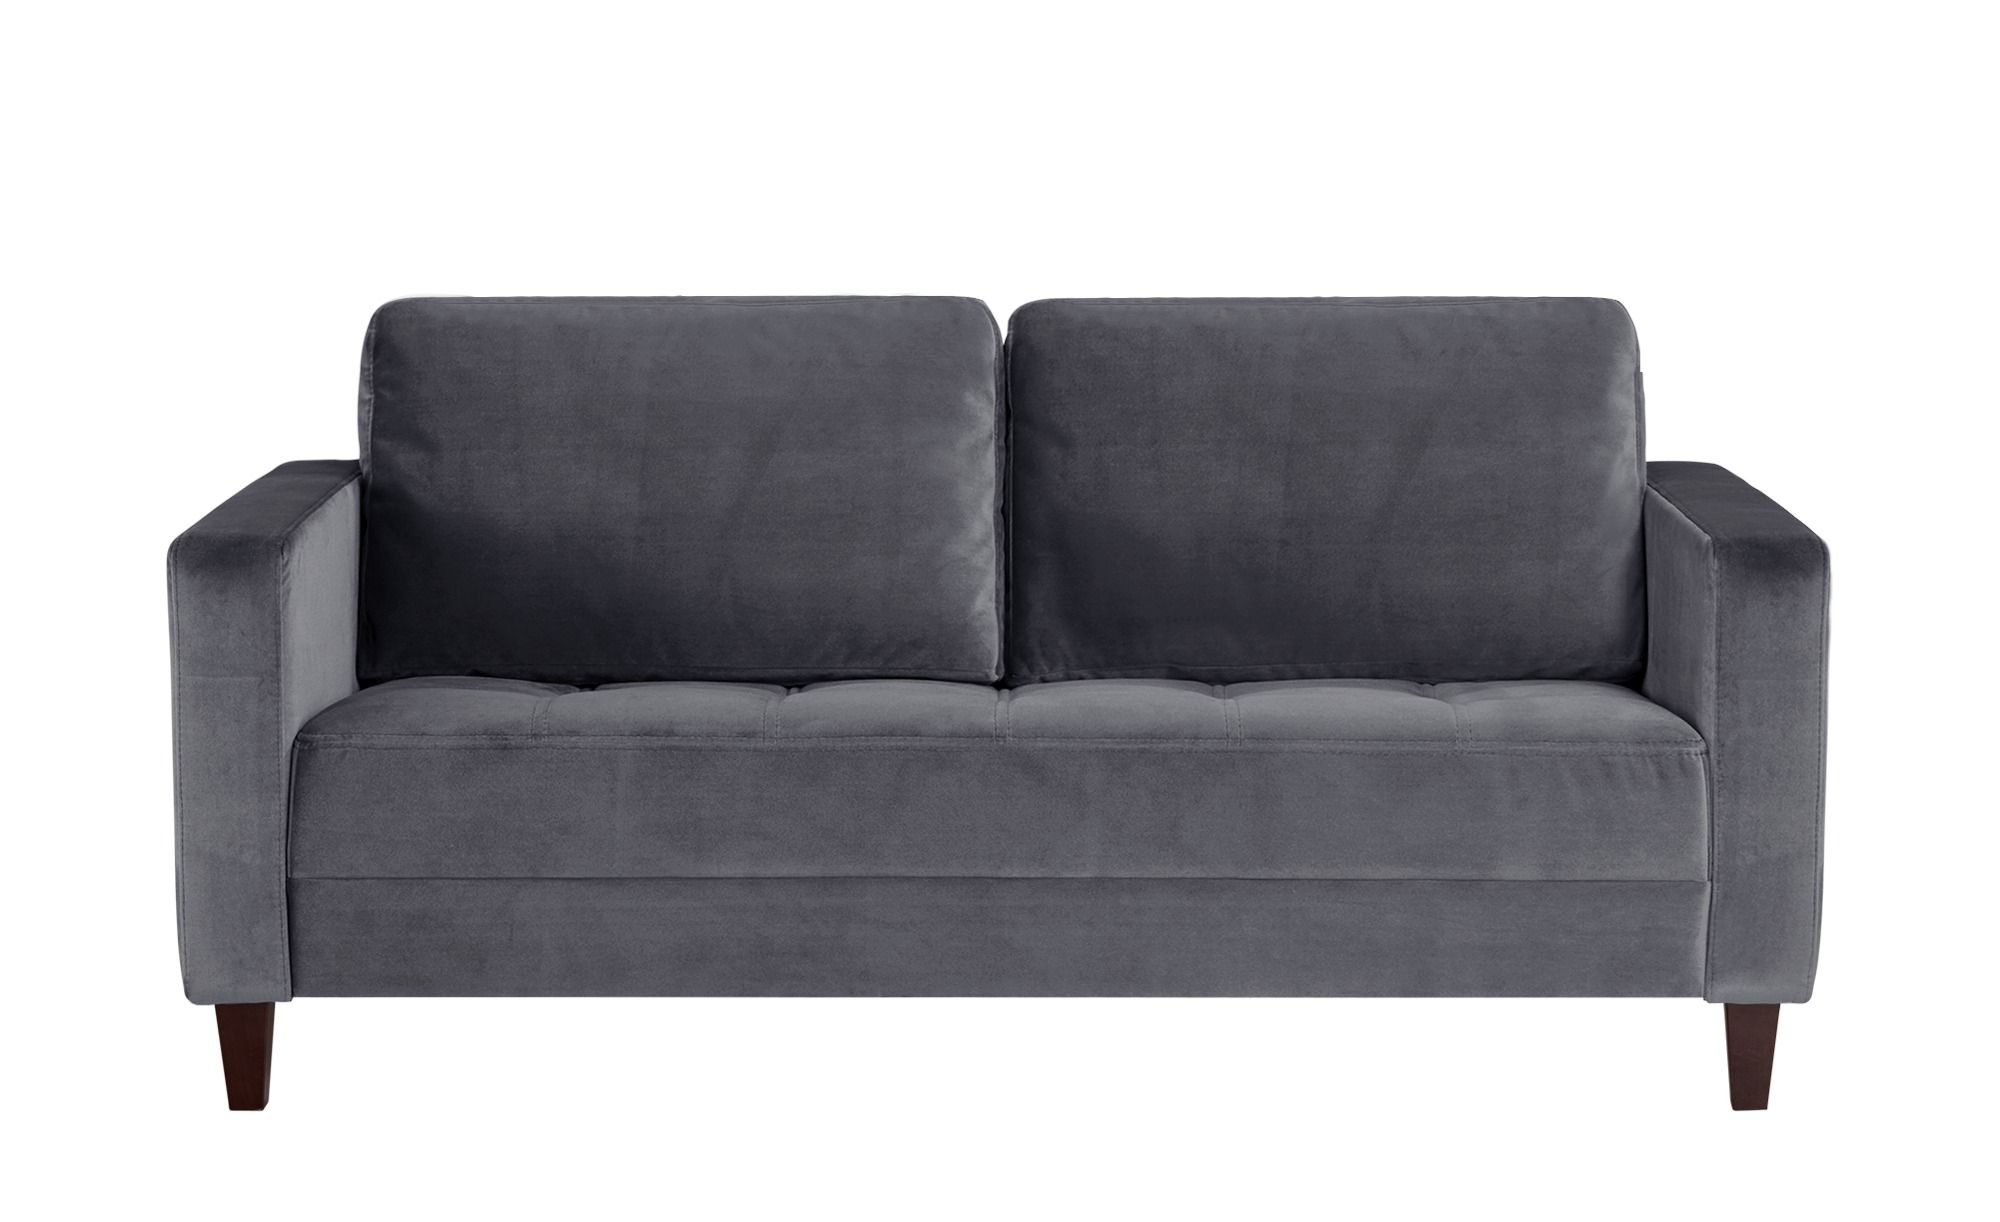 Ecksofa Energy Smart Sofa Anthrazit Mikrofaser Geradine In 2019 Products Sofa